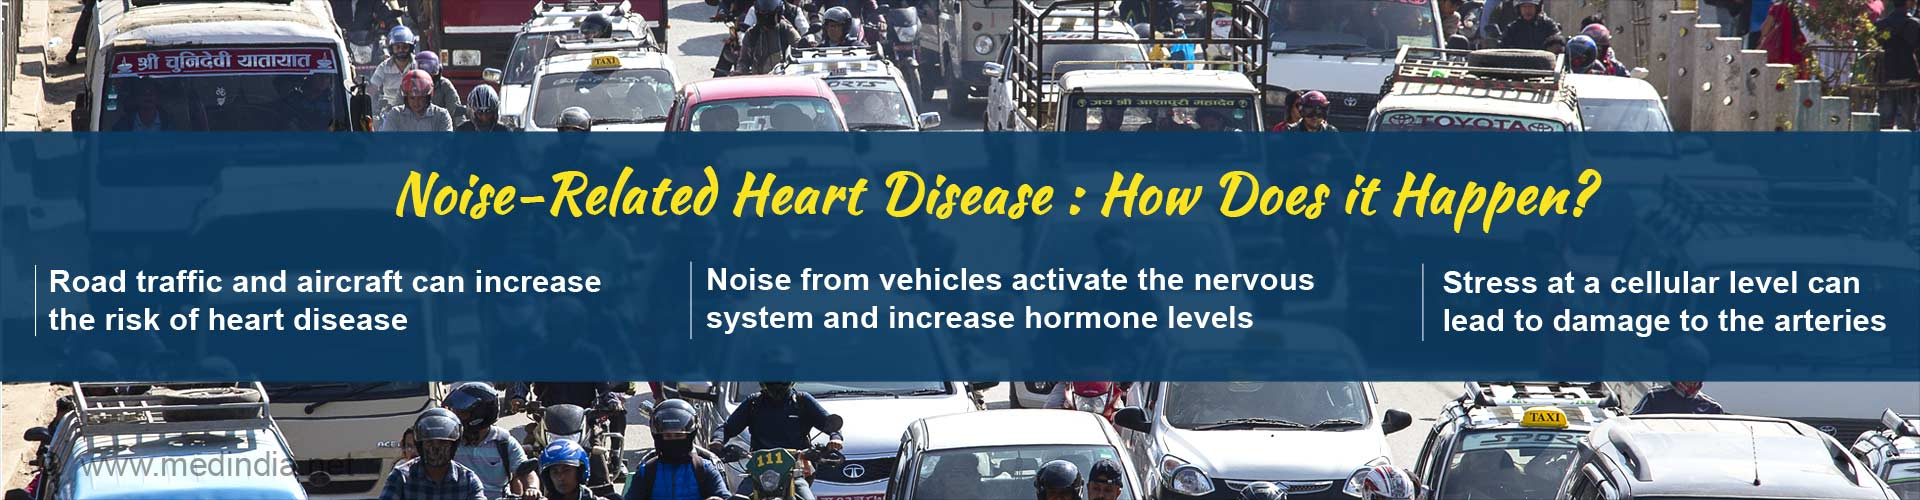 Noise From Trains, Planes, Trucks Can Cause Heart Disease